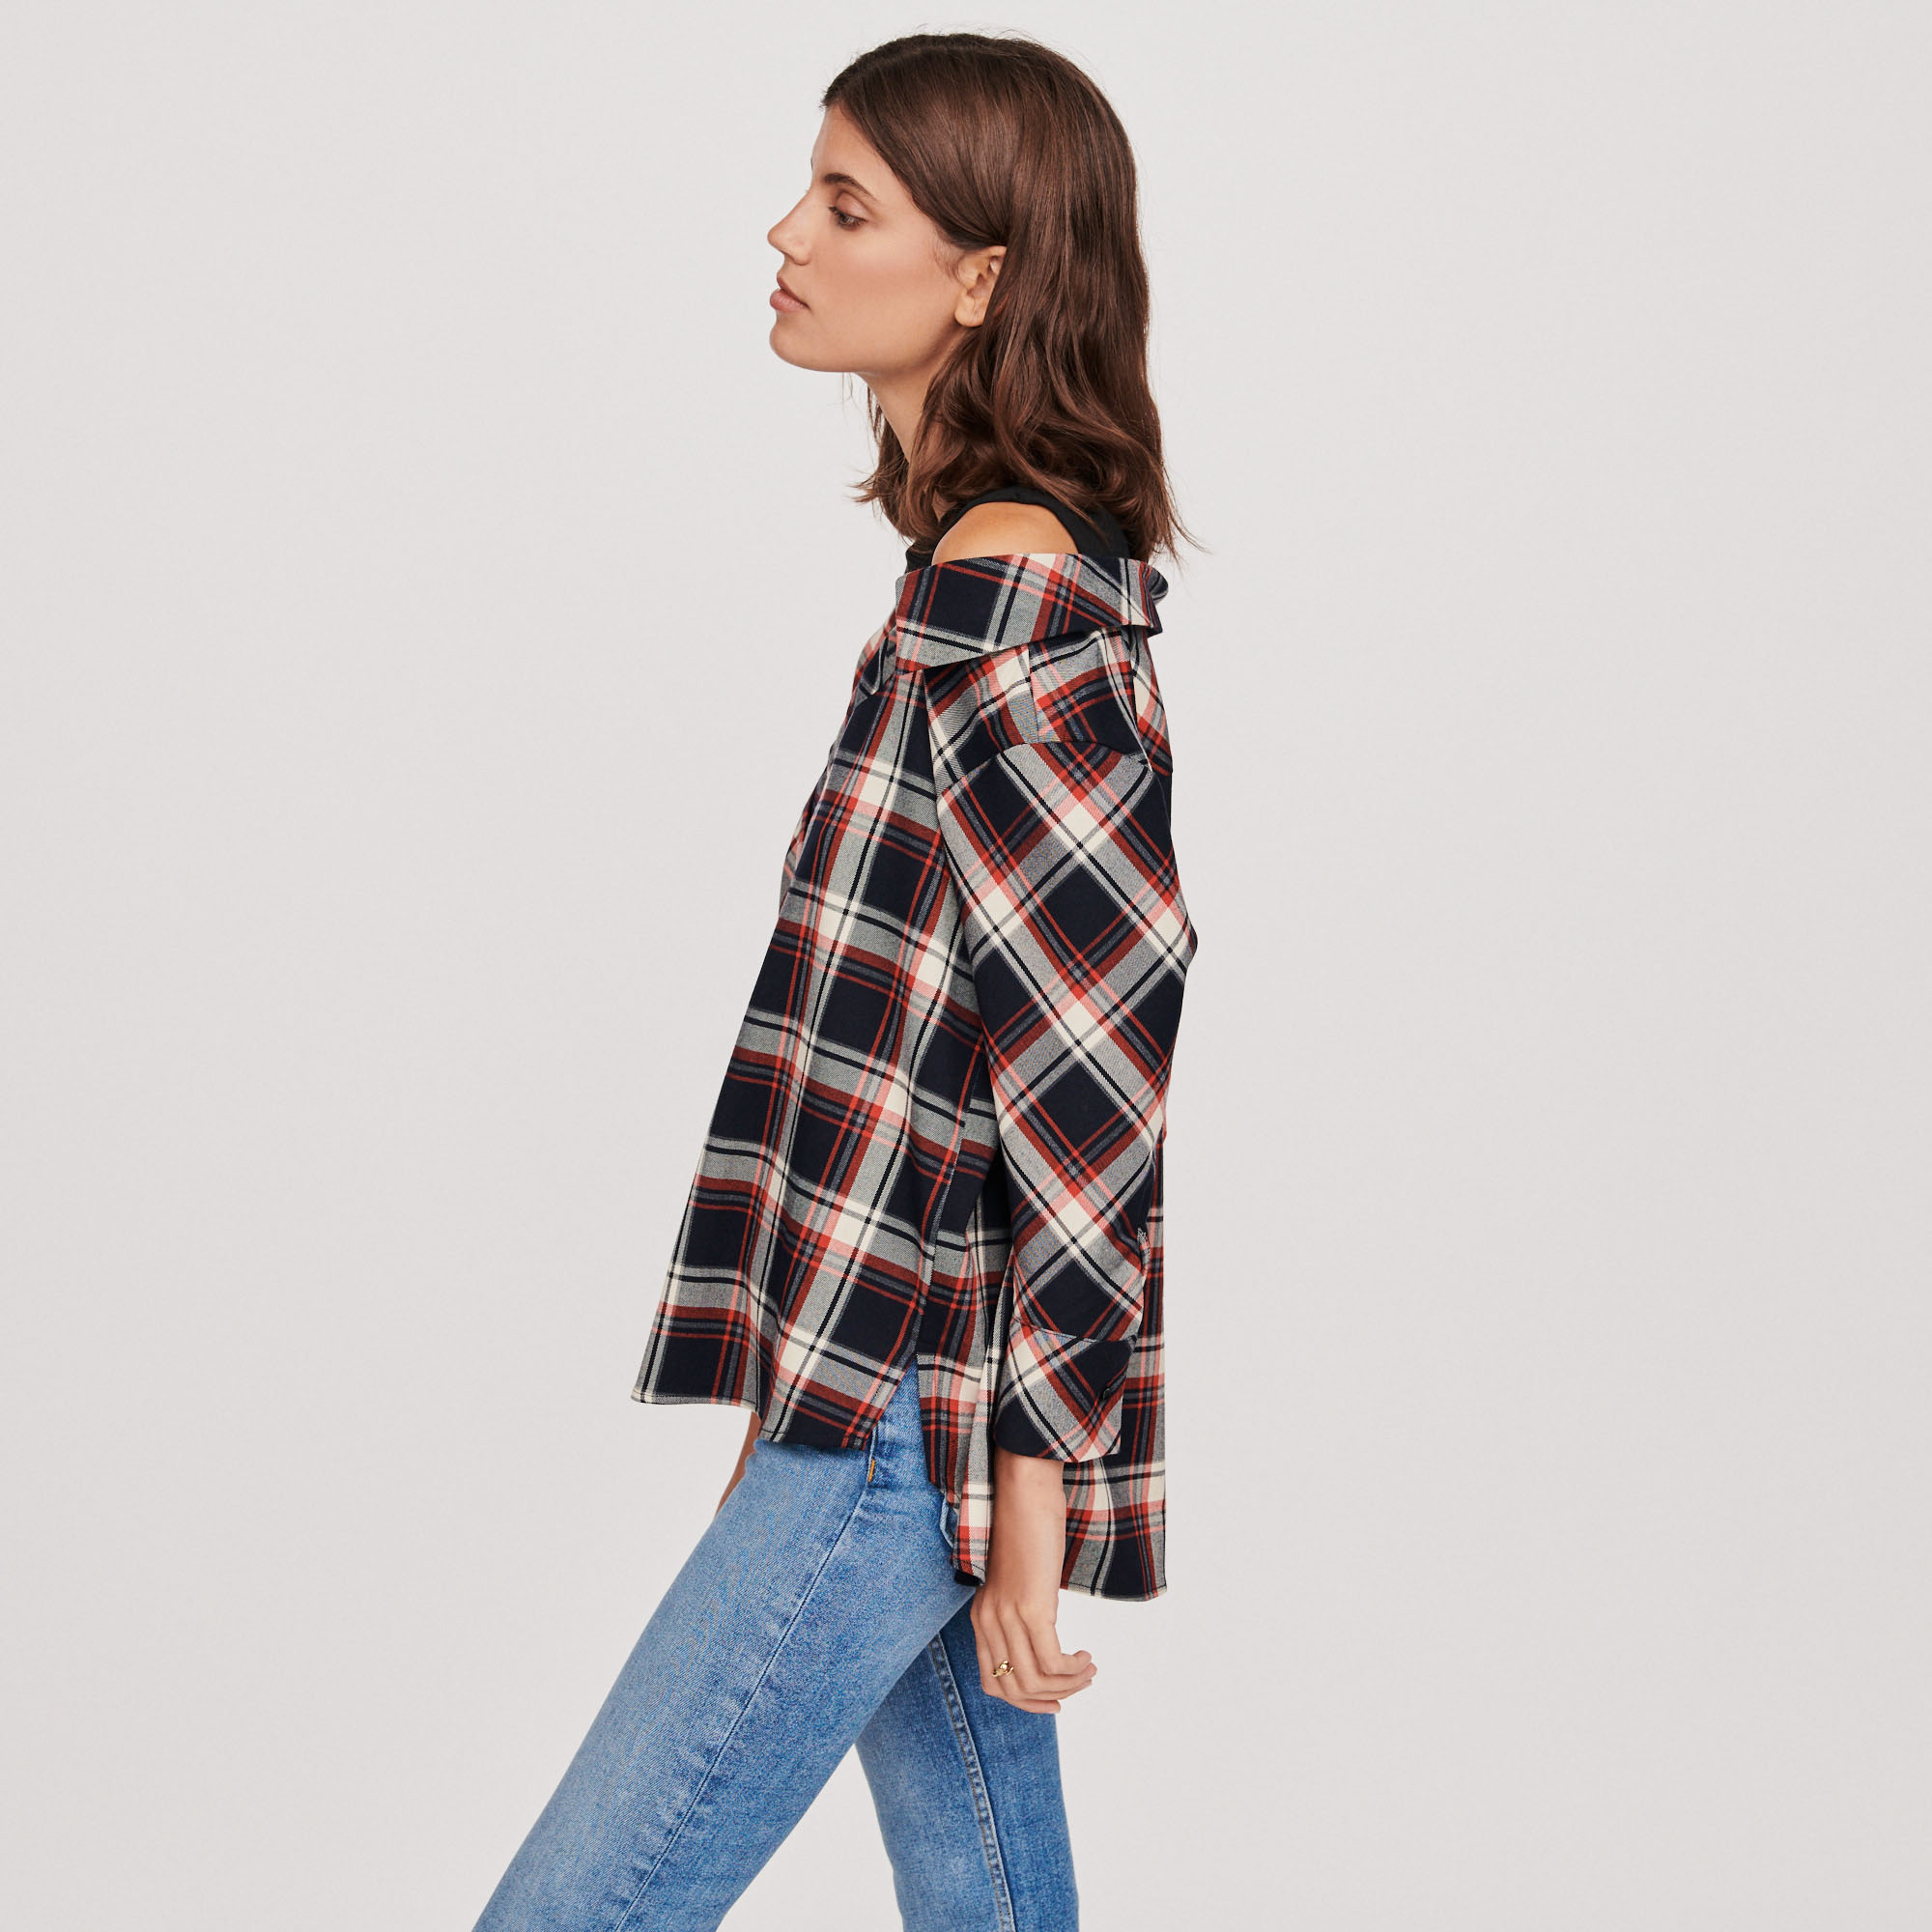 Trompe l'oeil check red shirt - Navy